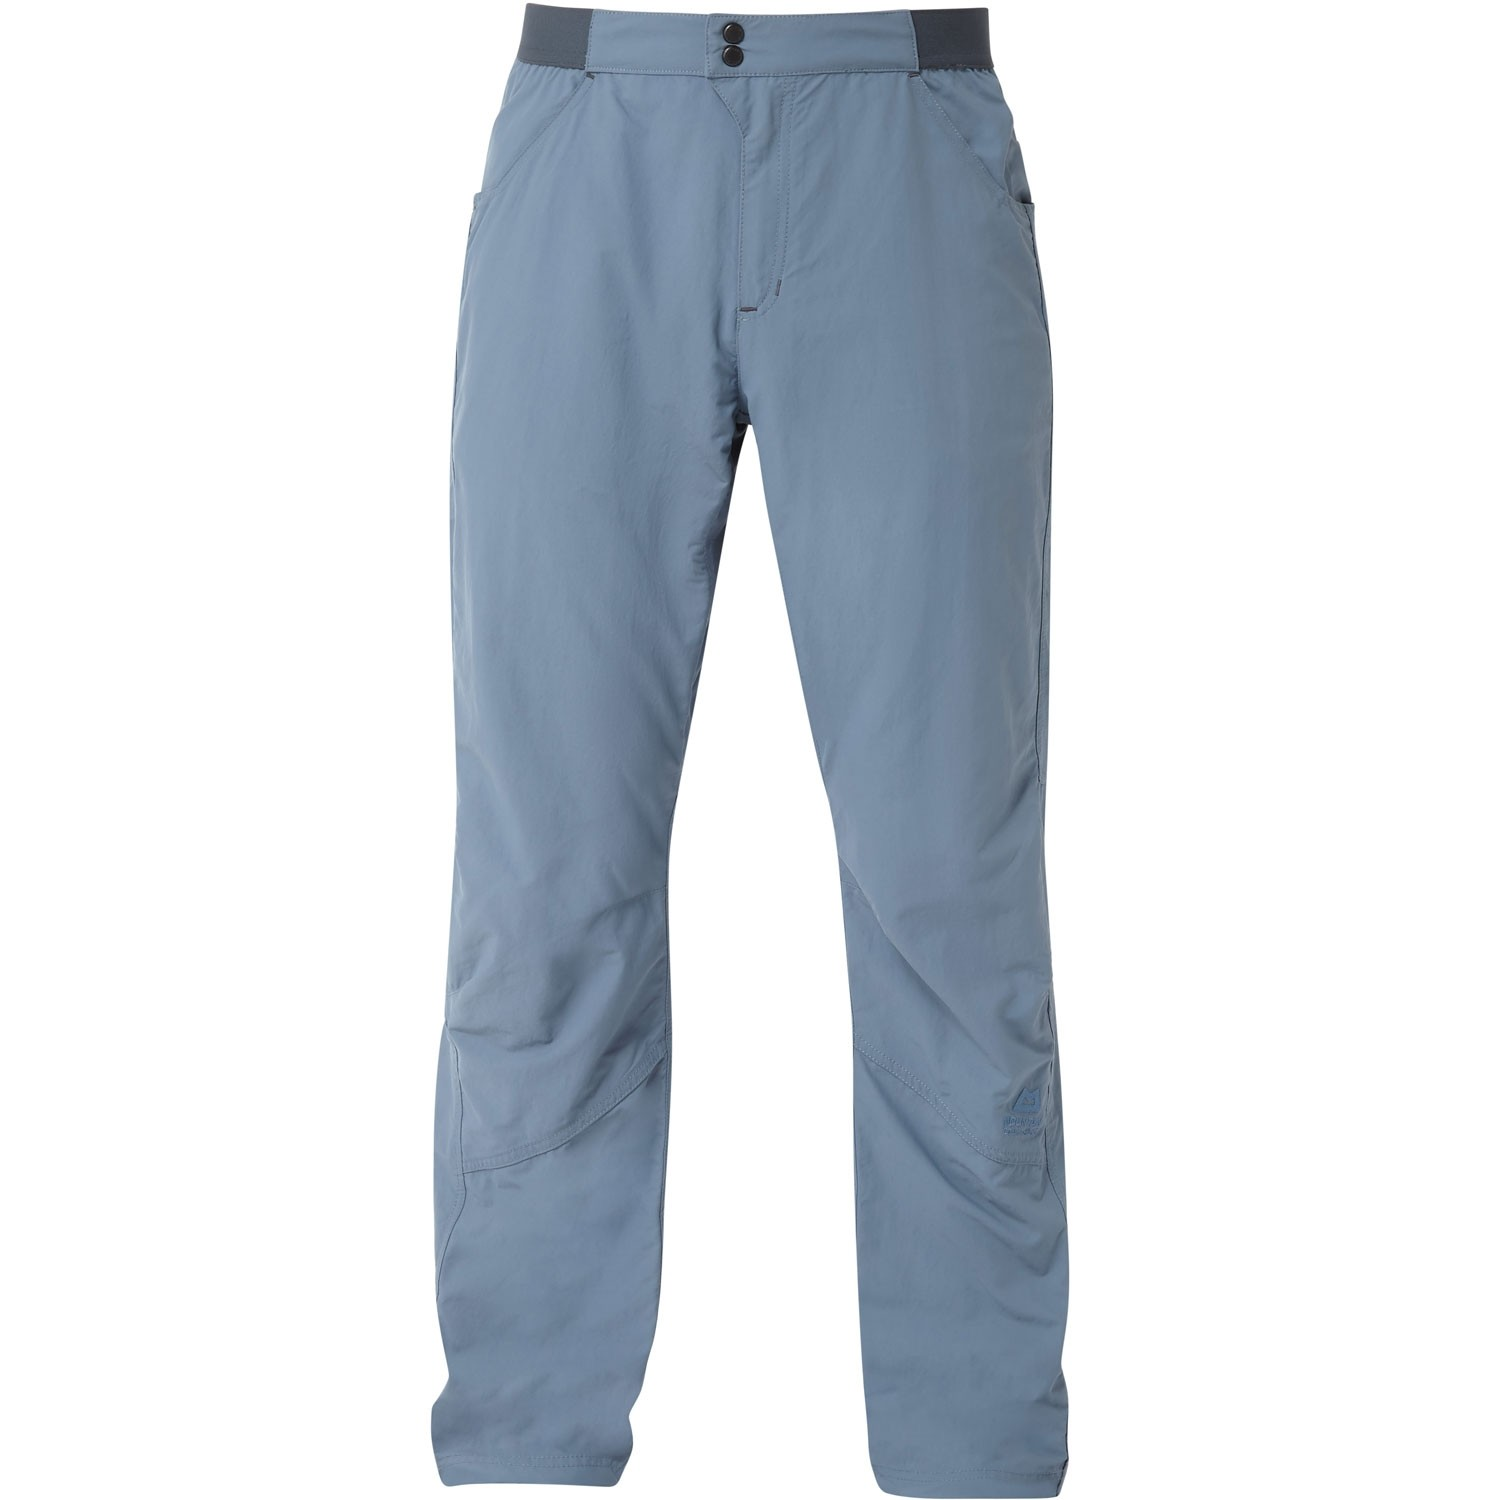 Mountain Equipment Men's Inception Pant - Alaskan Blue